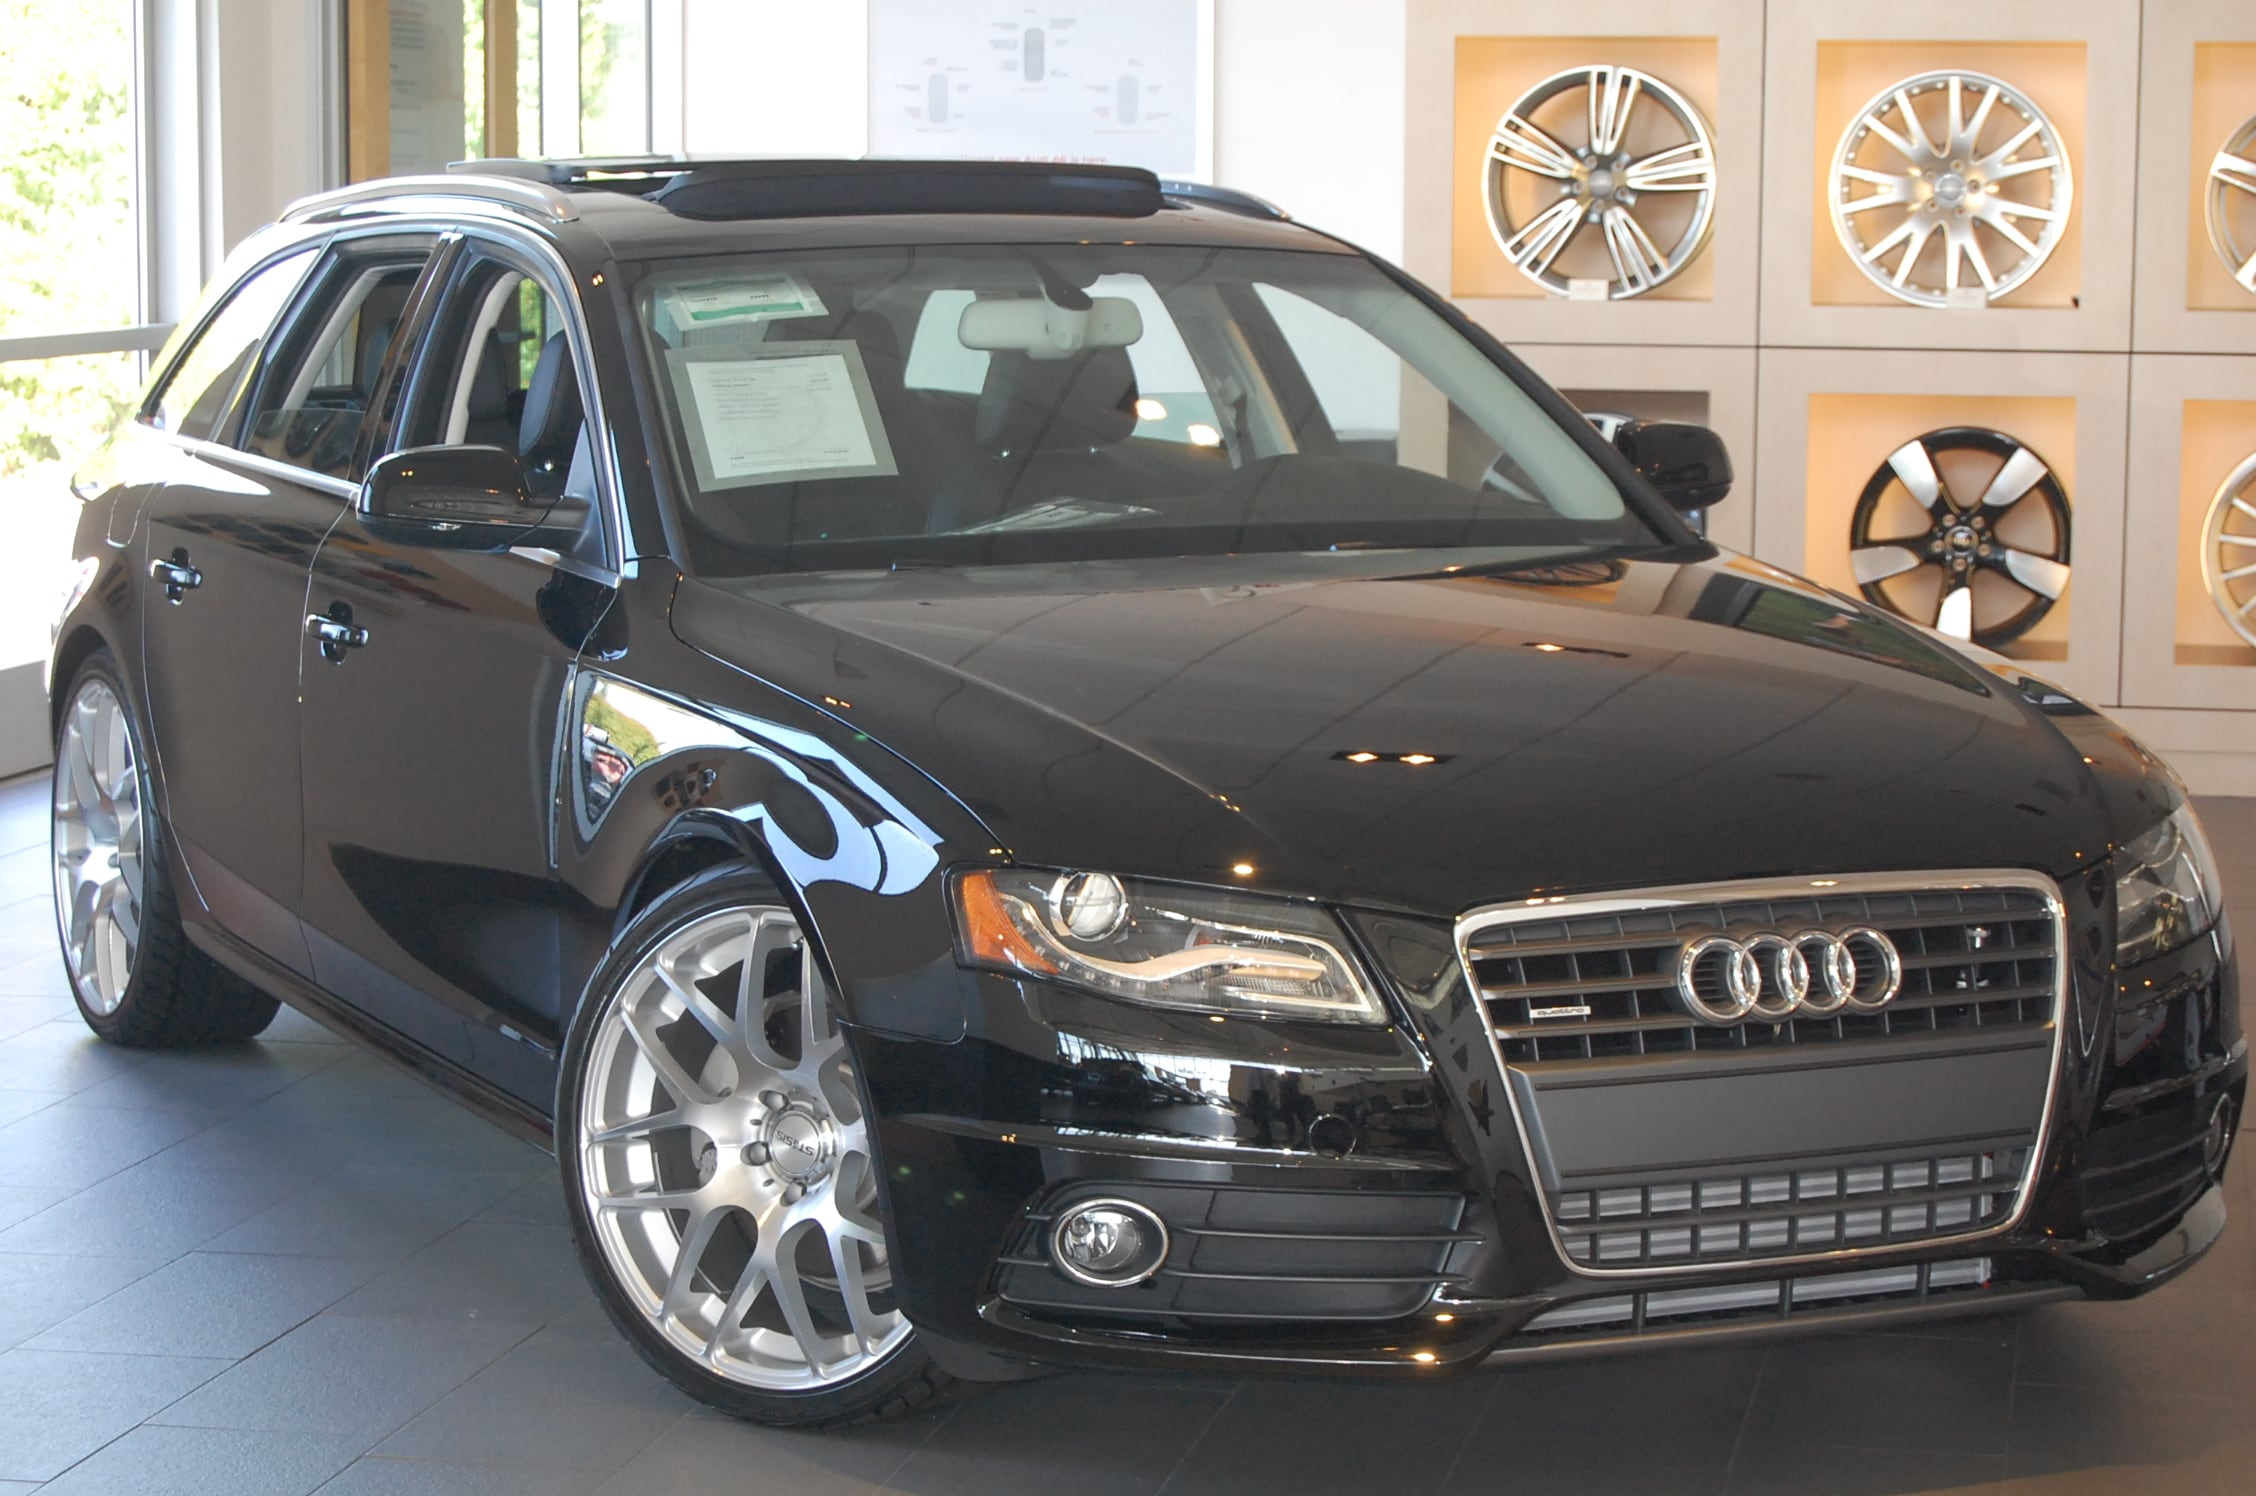 Stasis Audi Dealer In SoCal Price Experience - Audi dealers southern california